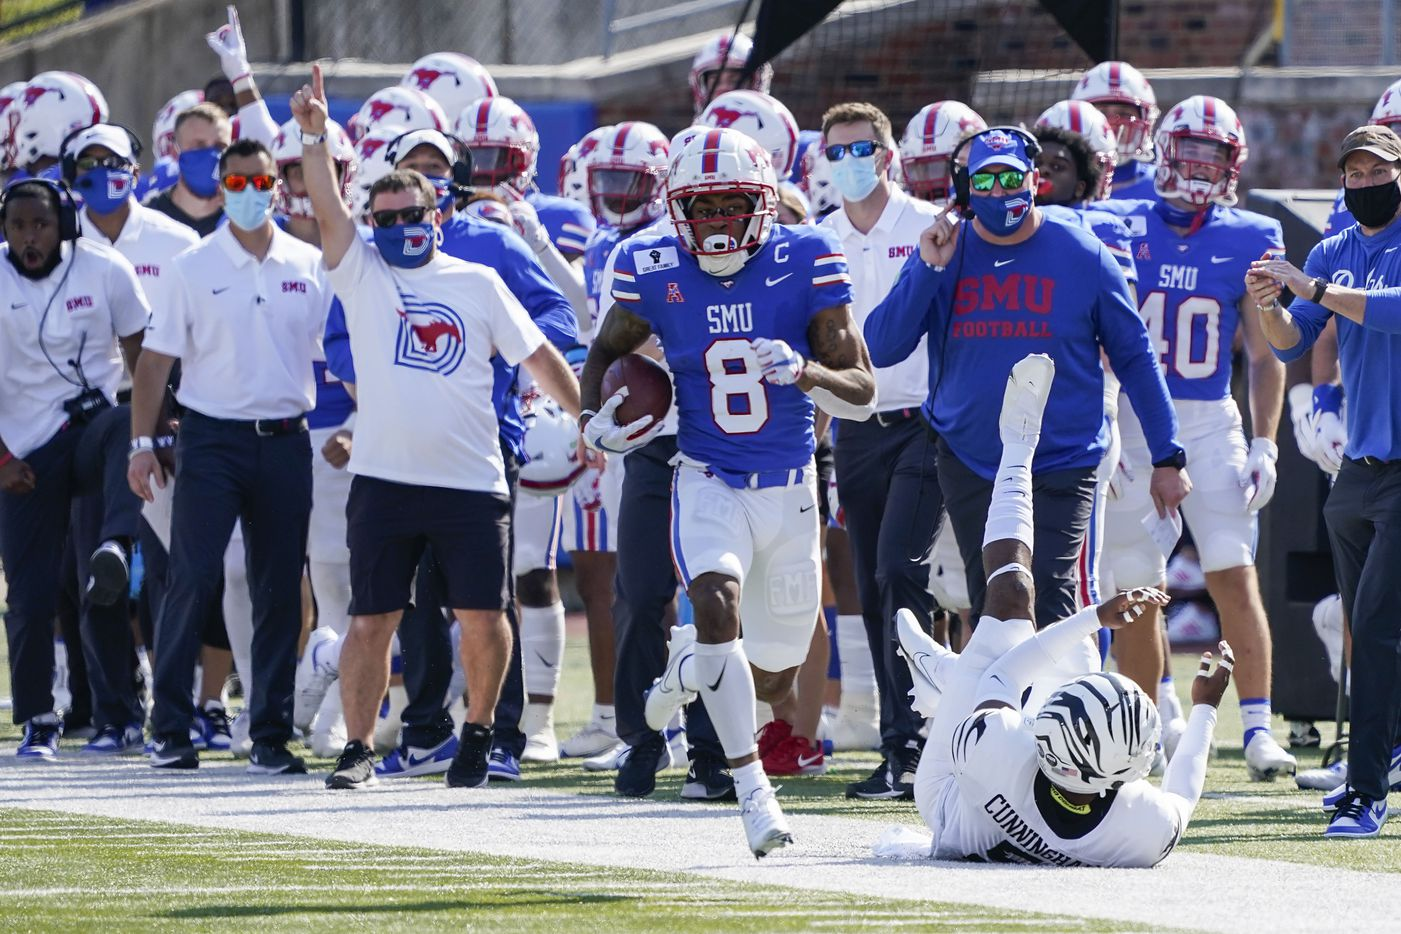 SMU wide receiver Reggie Roberson Jr. gets past Memphis defensive end Everitt Cunningham as he races 85-yards for a touchdown during the first half of an NCAA football game at Ford Stadium on Saturday, Oct. 3, 2020, in Dallas.